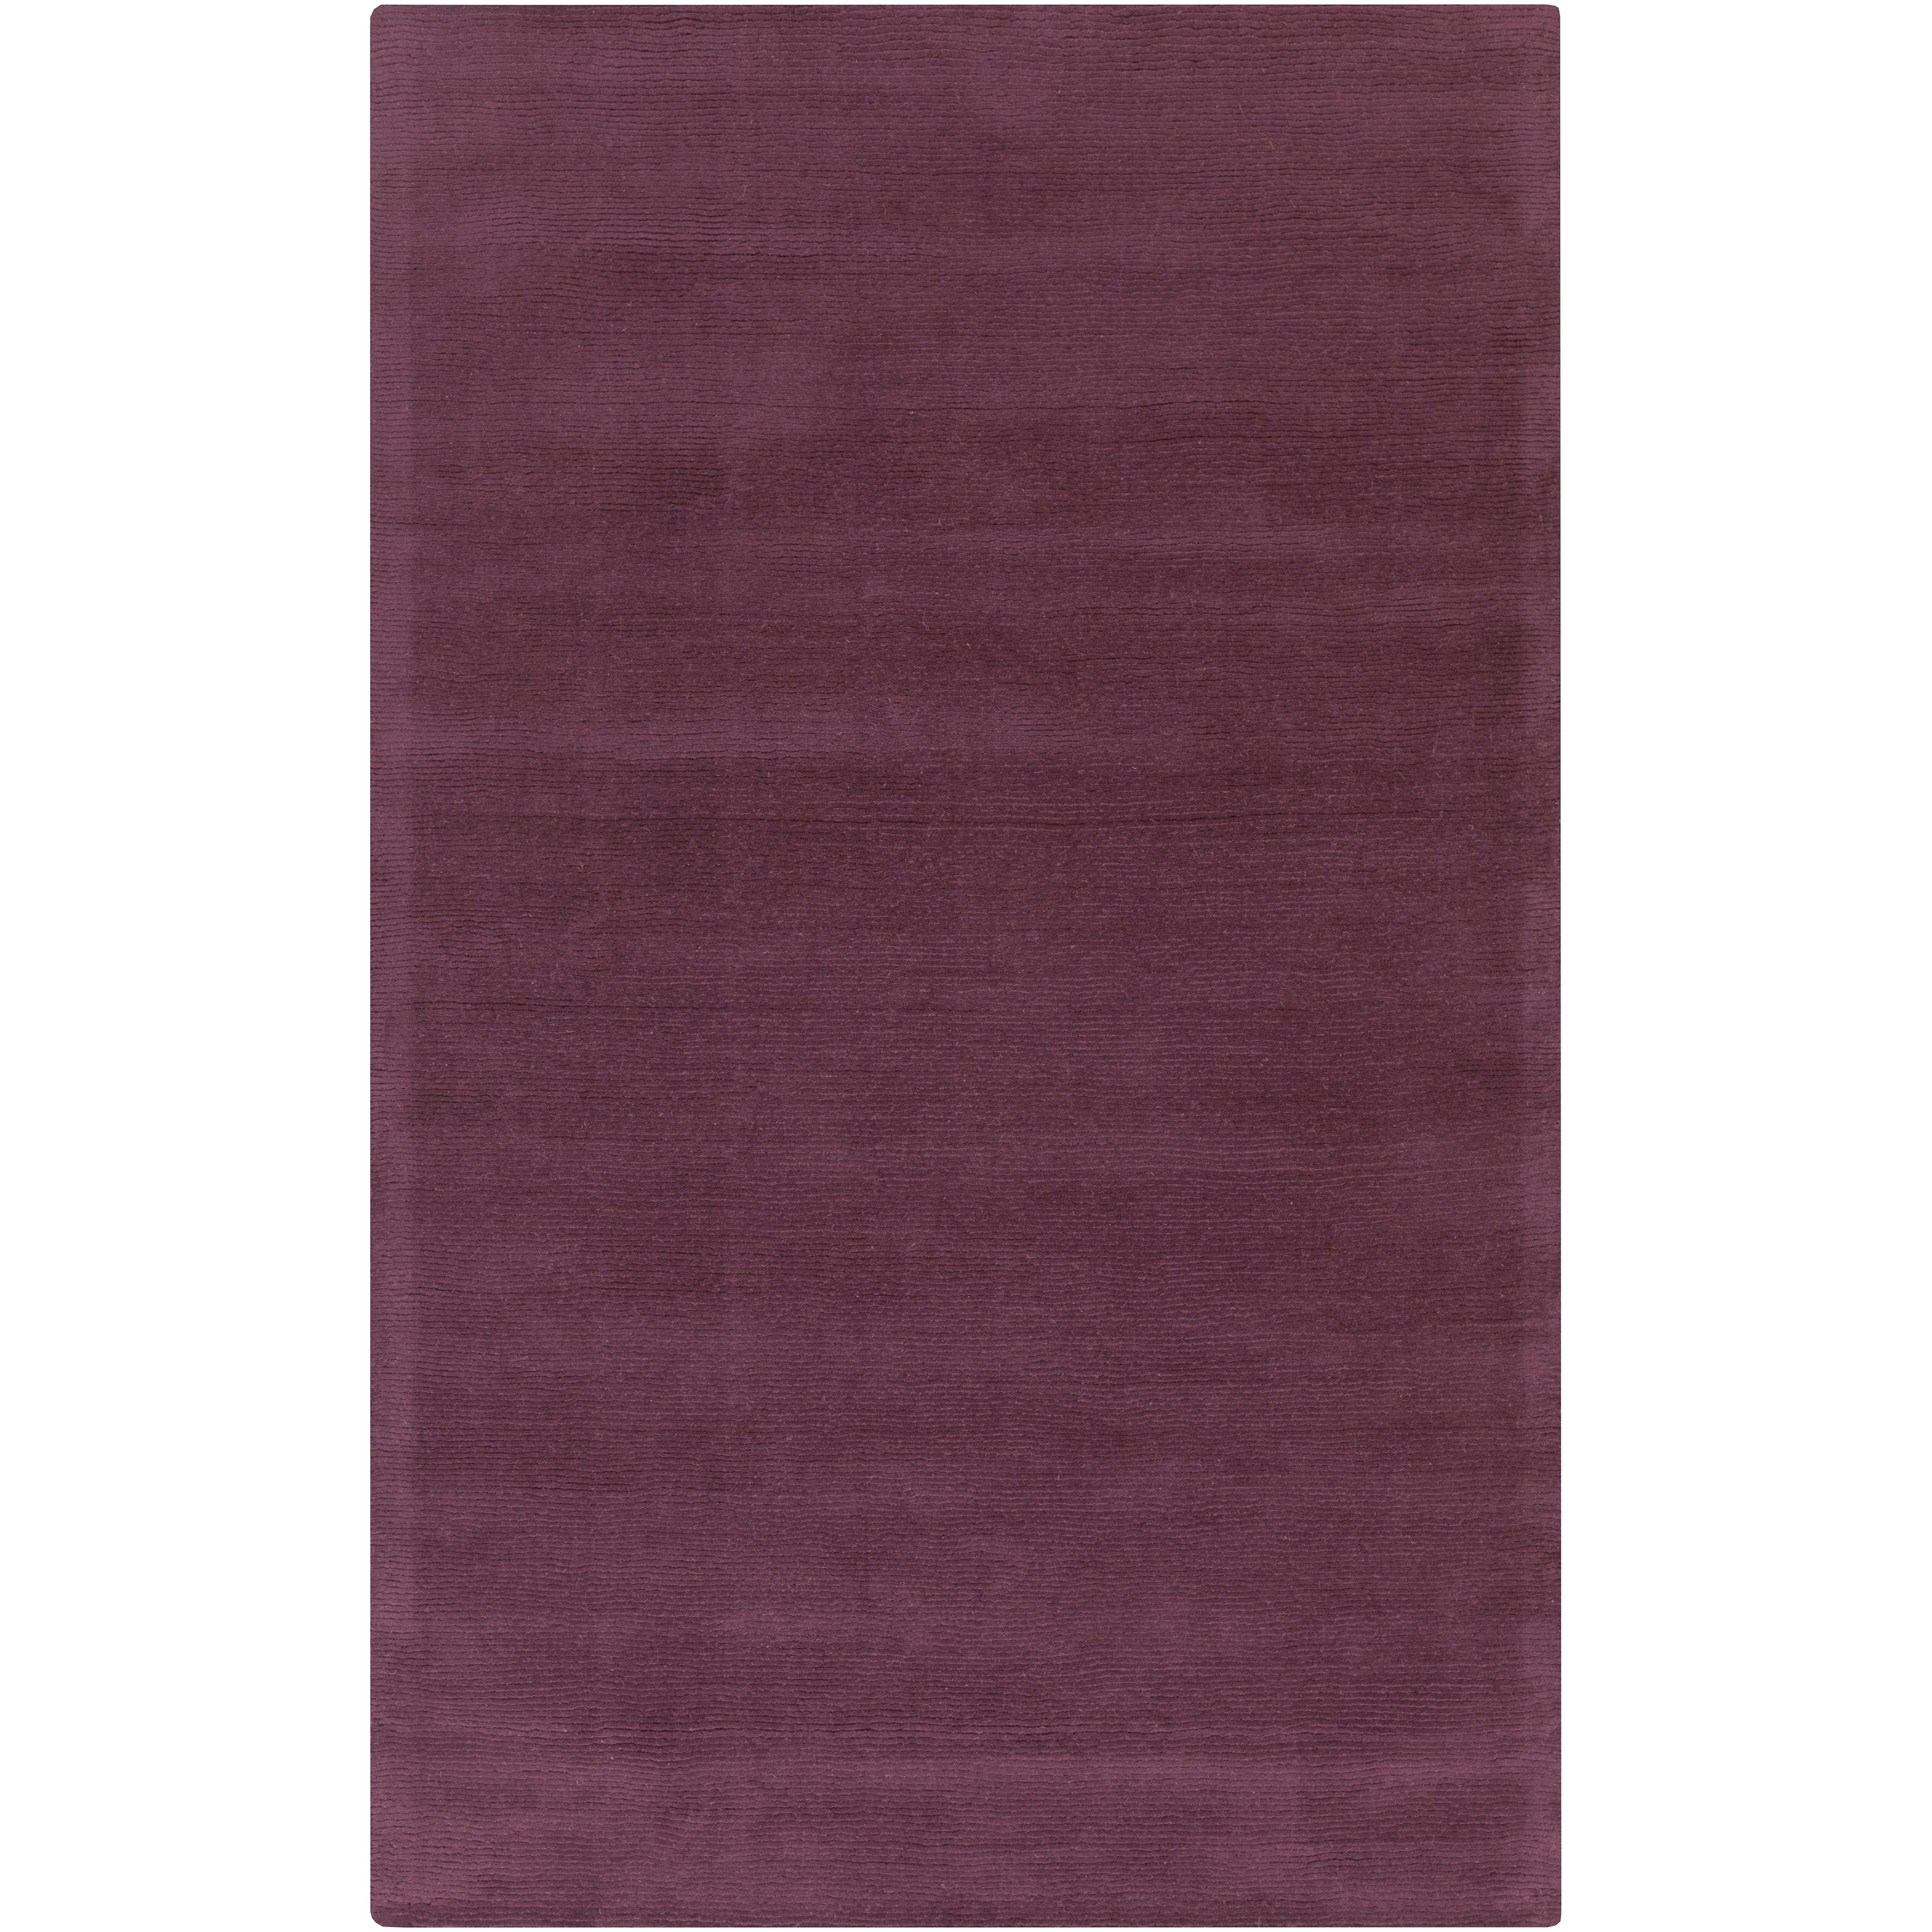 Surya Rugs Mystique 5' x 8' - Item Number: M5326-58